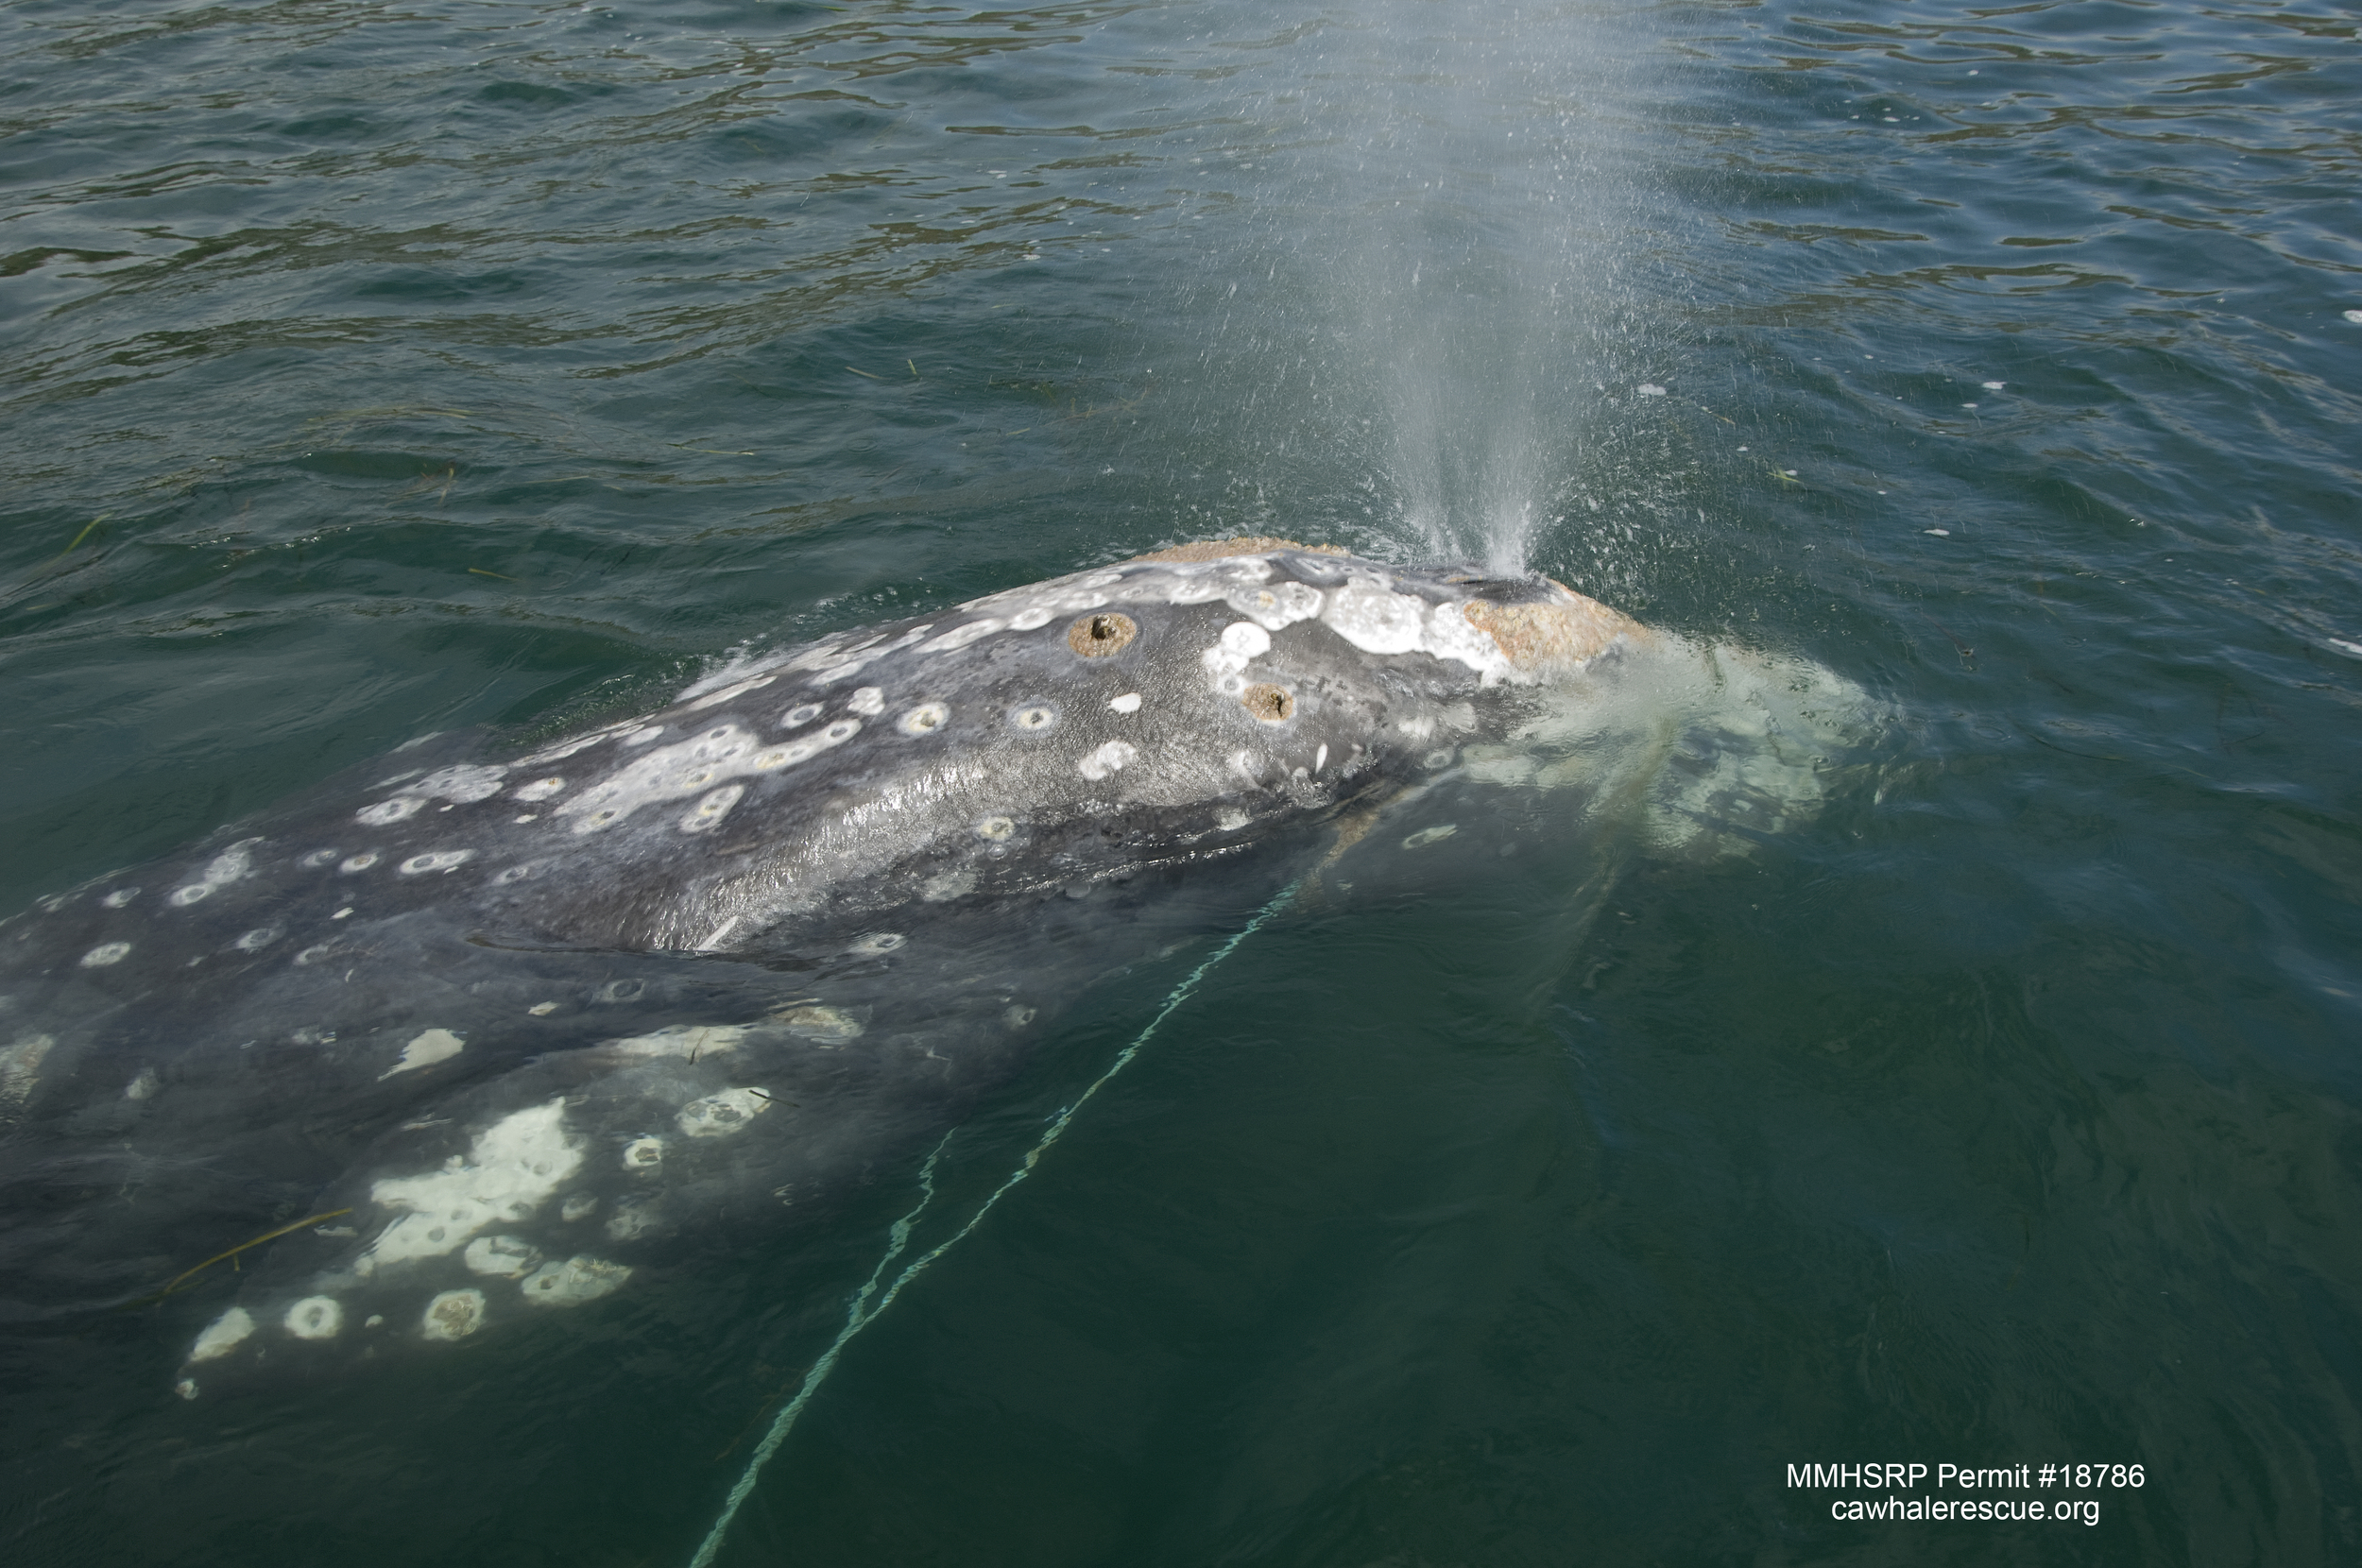 Gray whales are a lighter gray color, do not have a pronounced dorsal fin, and typically have more visible barnacles and other parasites.